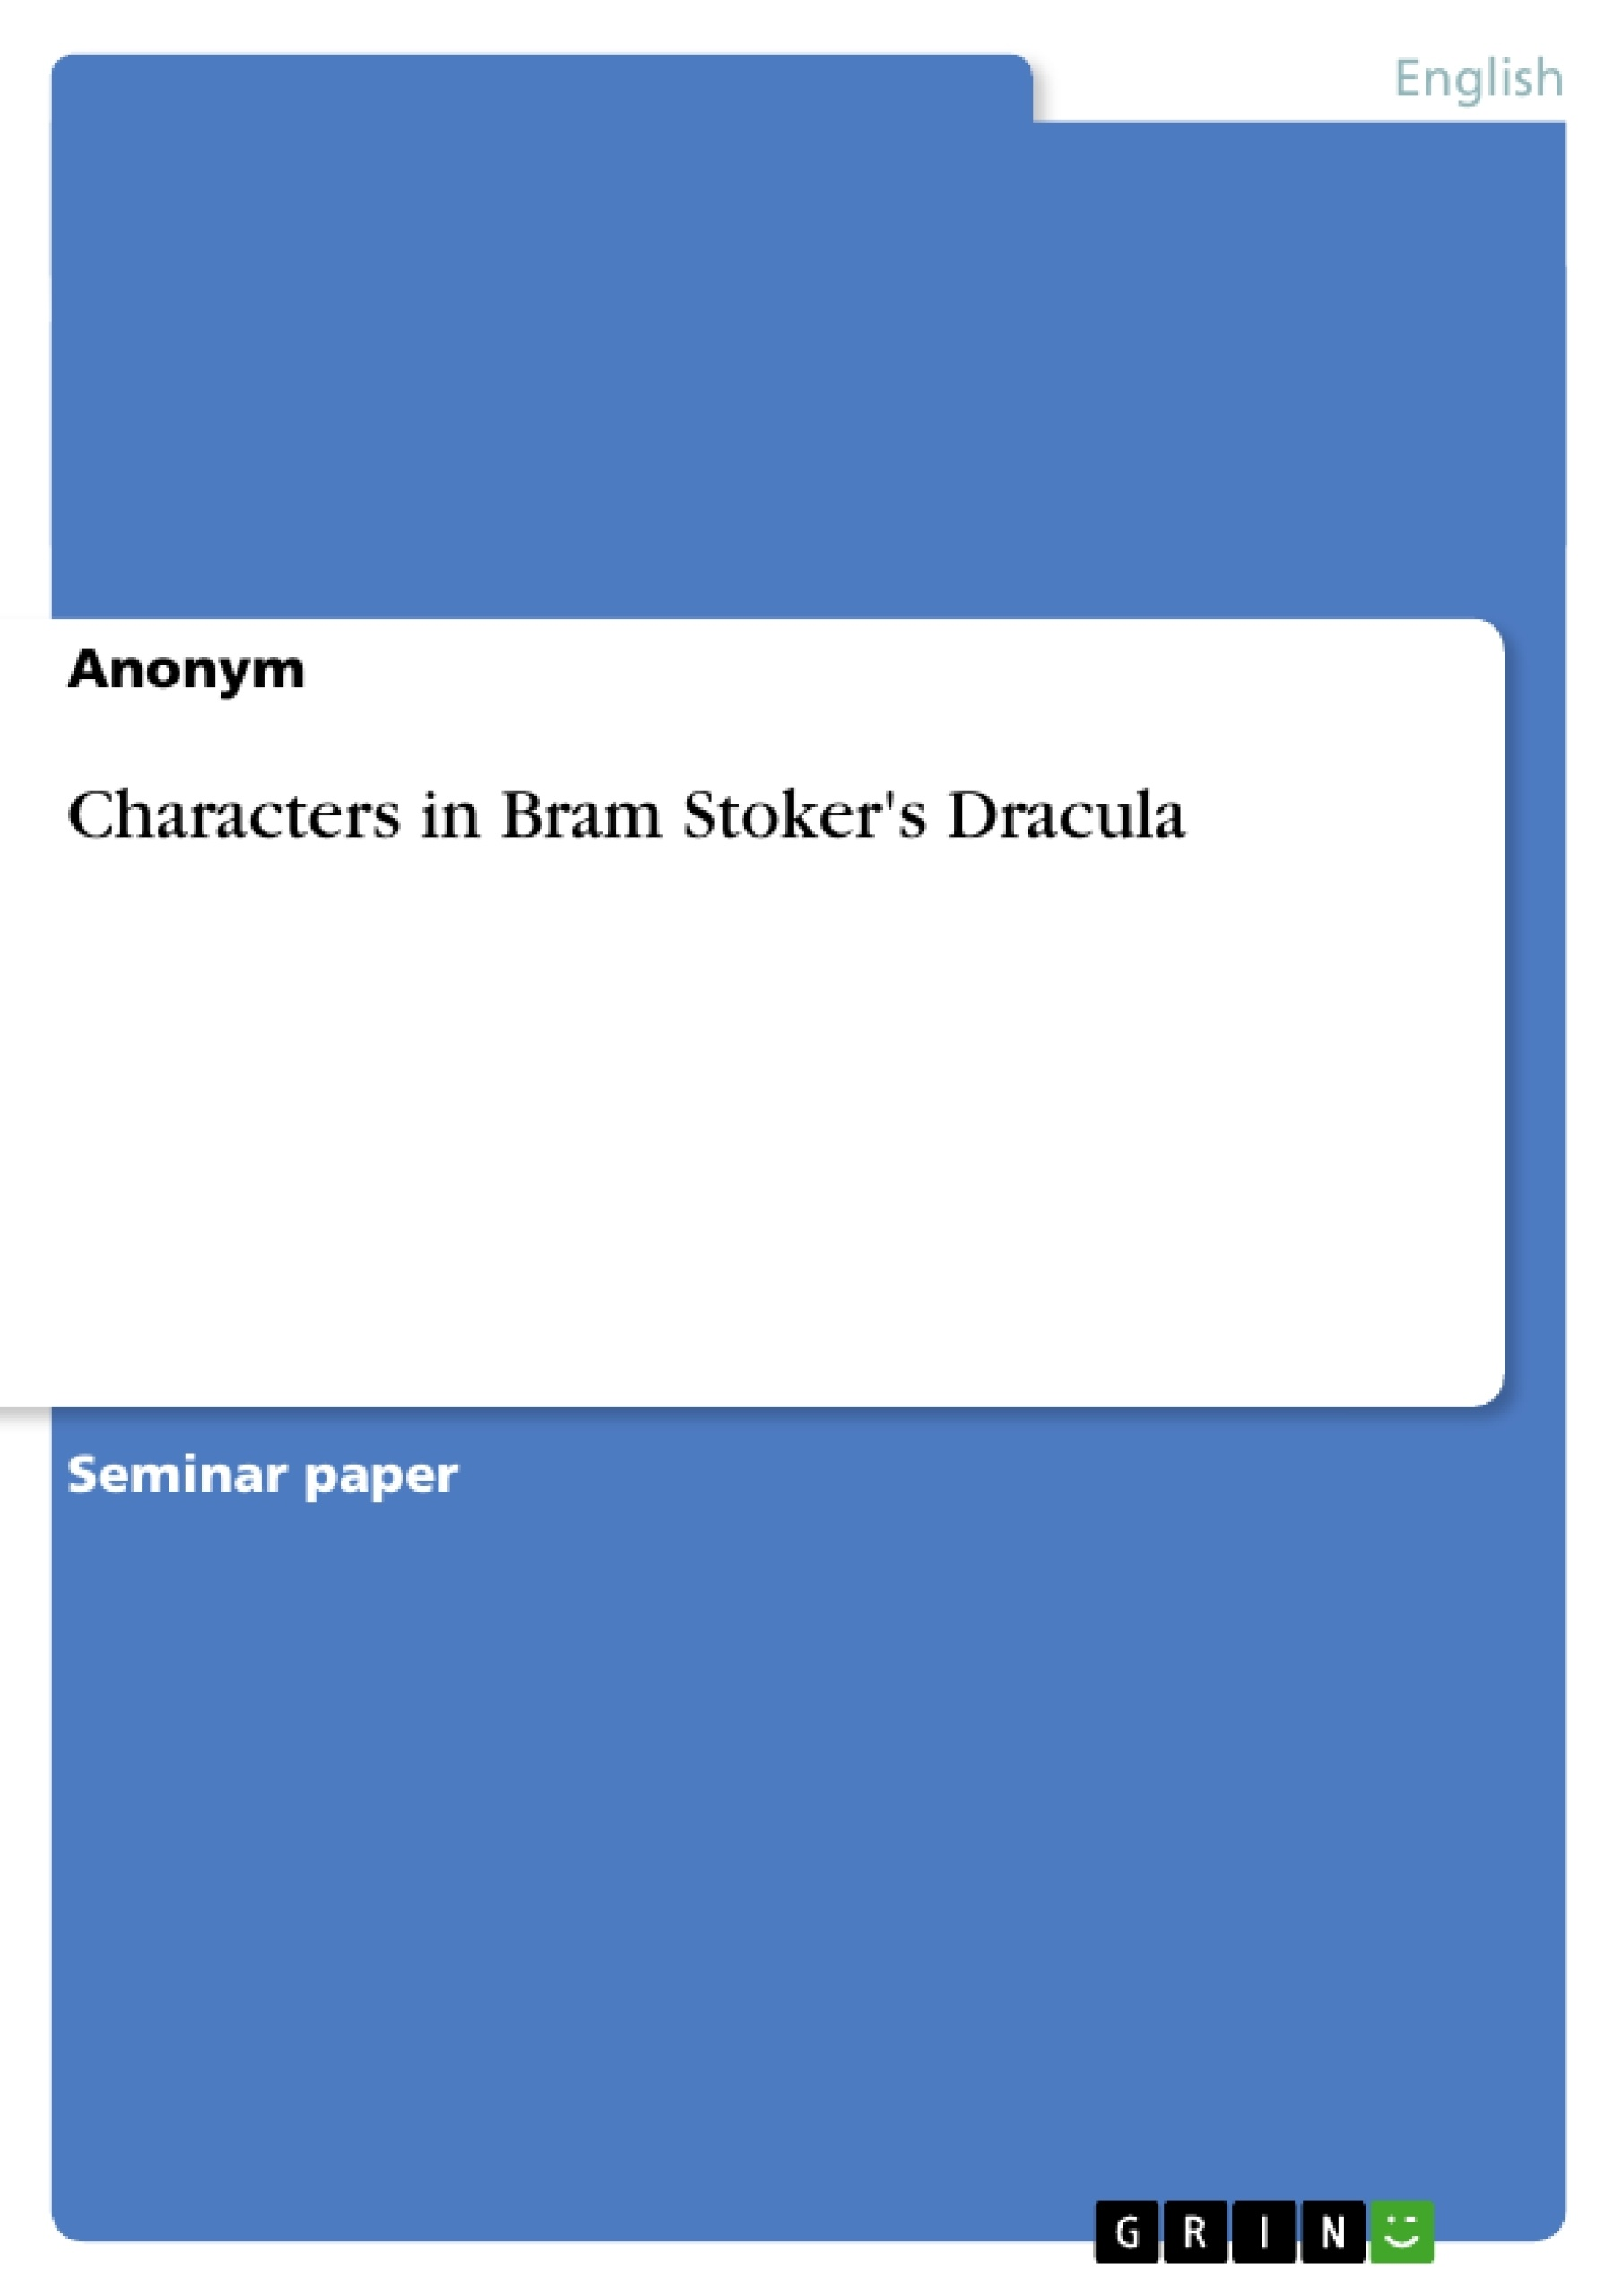 Title: Characters in Bram Stoker's Dracula